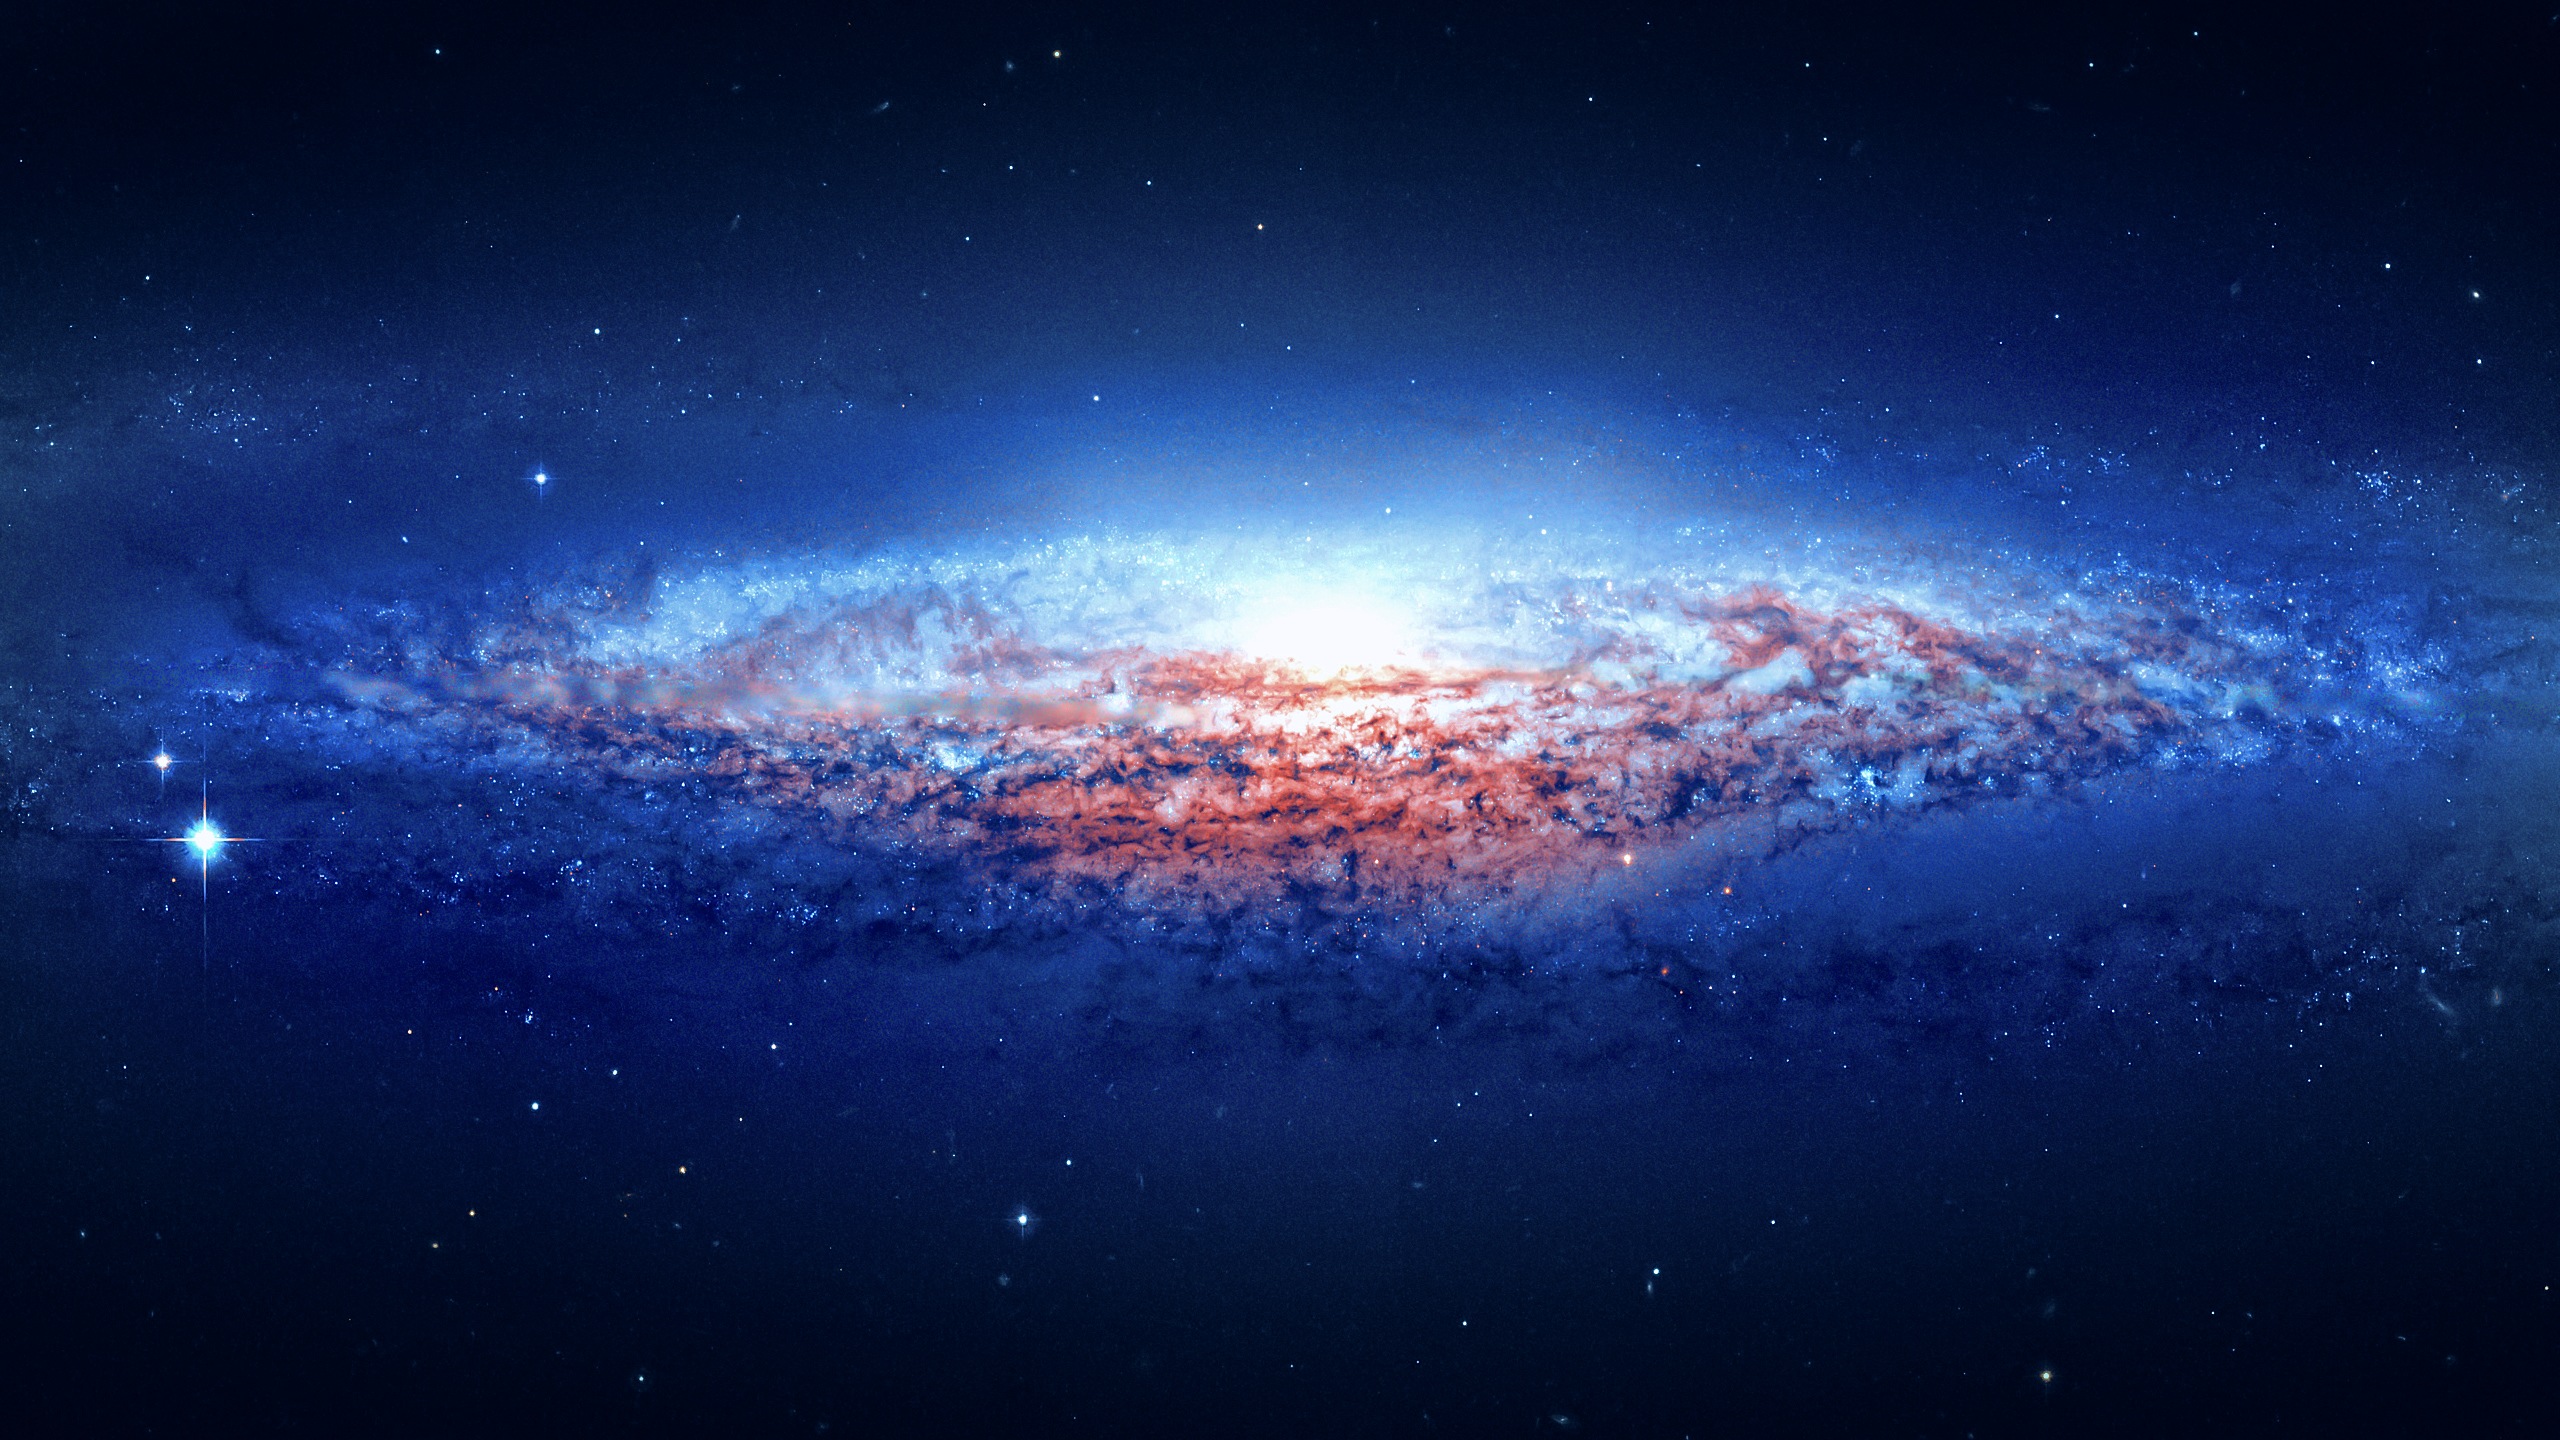 Galaxy Cool Backgrounds Wallpapers 3157 - Amazing Wallpaperz